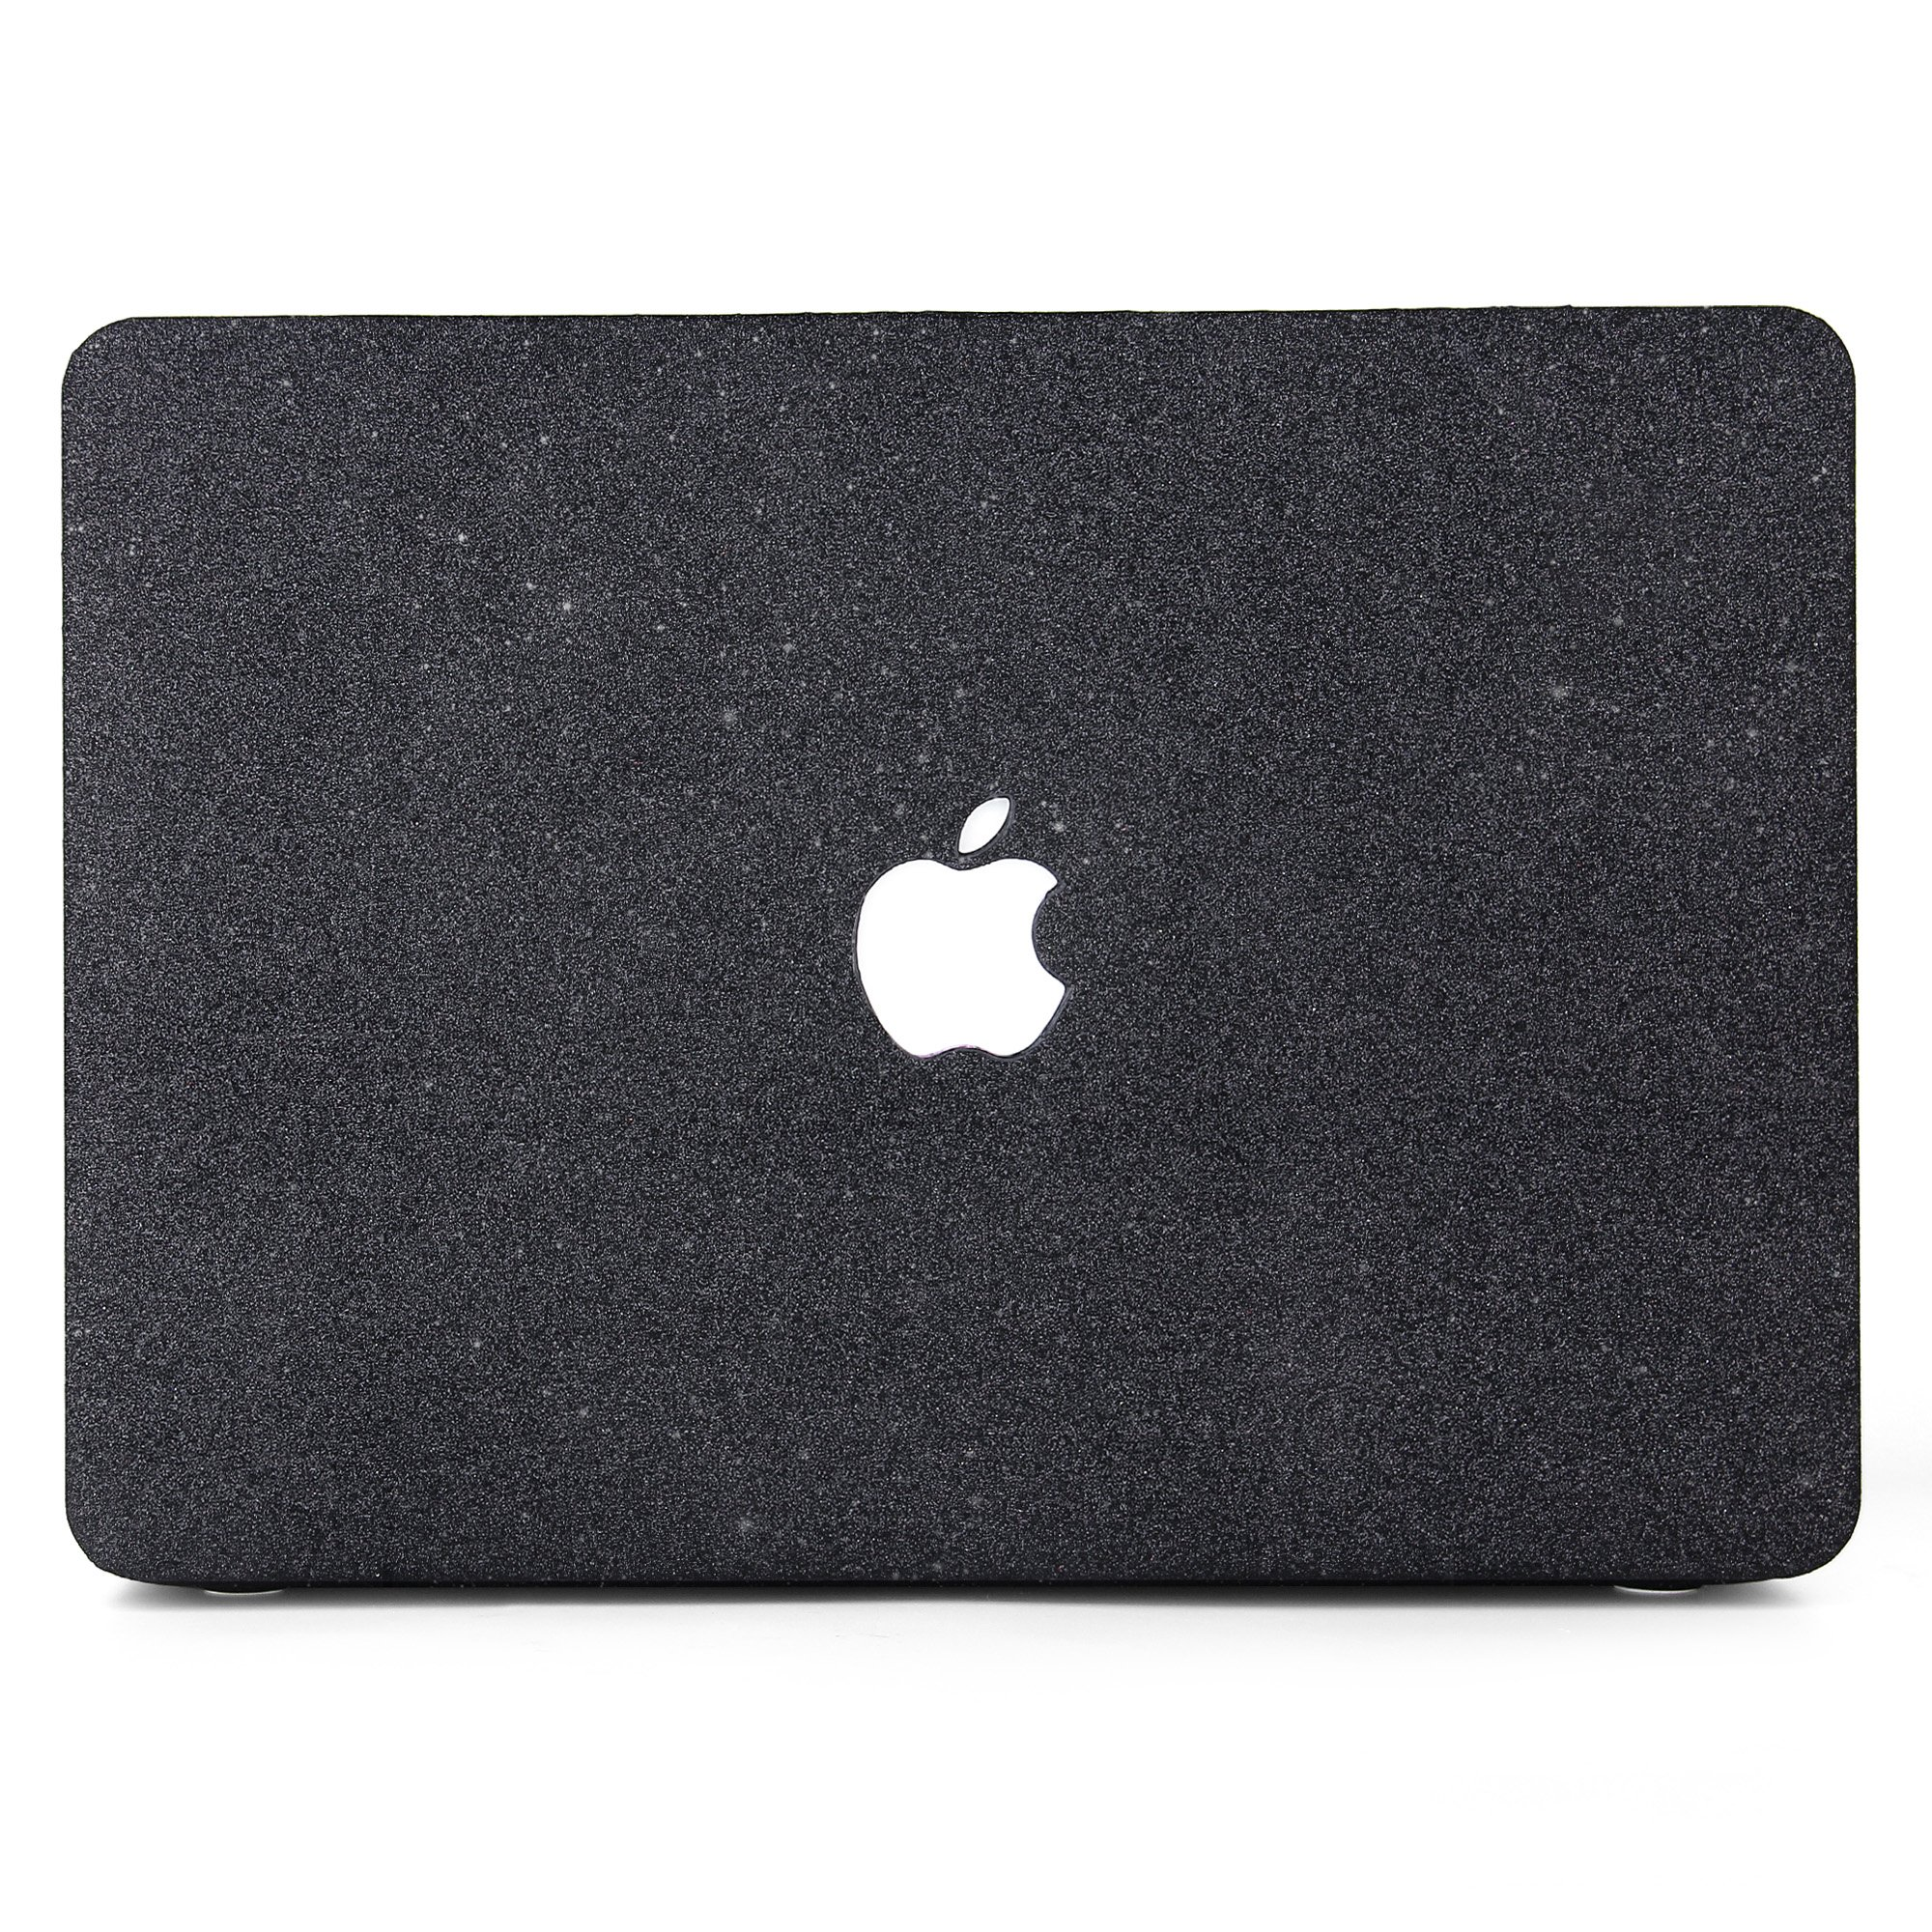 B BELK - MacBook 12'' with Retina Display Case,2 In 1 Matte Glitter Bling Texture Ultra-Slim Light Weight PC Hard Case With Keyboard Cover For MacBook 12 Inch(Model:A1534) - Black